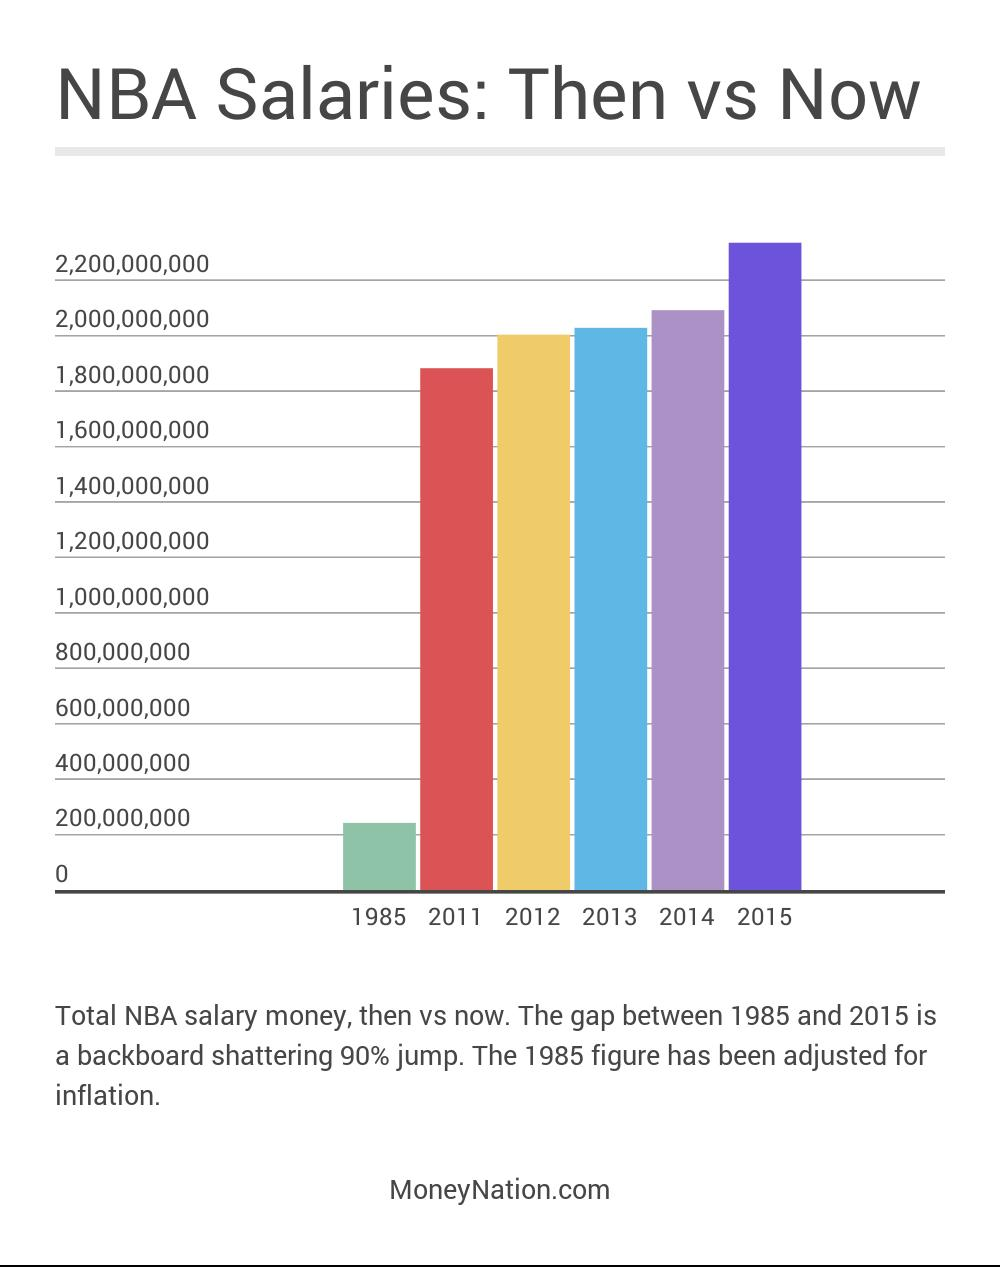 NBA Salaries Then vs Now